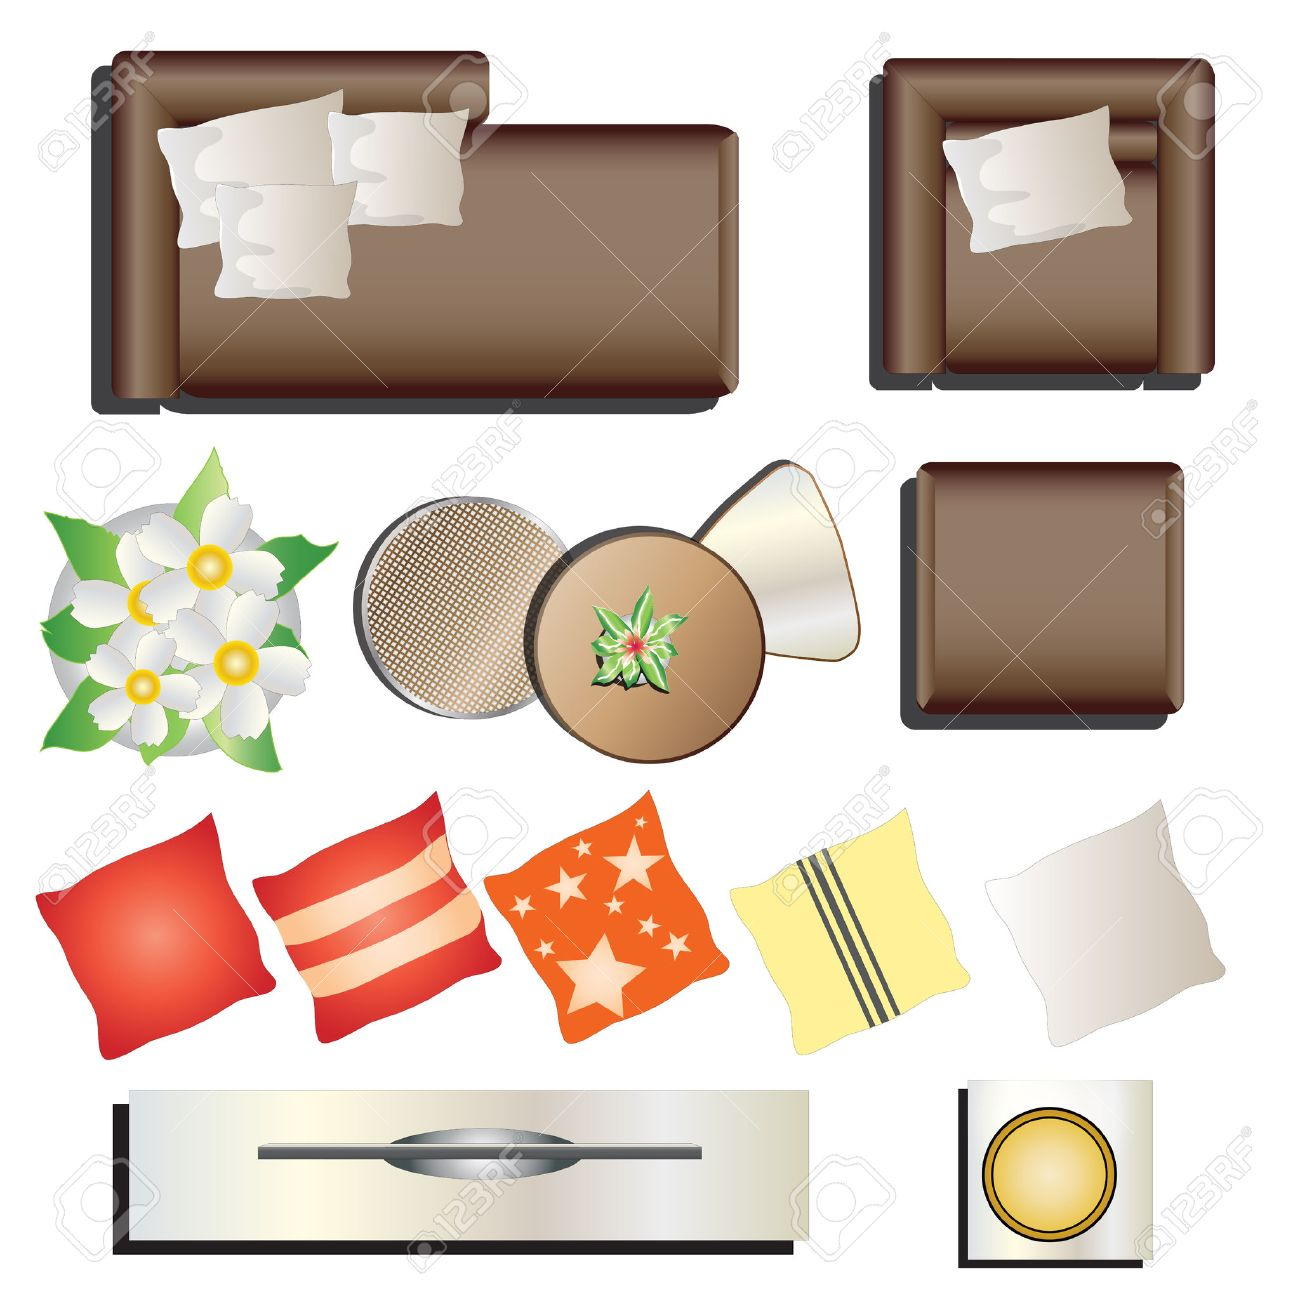 Furniture top view images - Living Room Furniture Top View Set 12 For Interior Vector Illustration Stock Vector 48755780